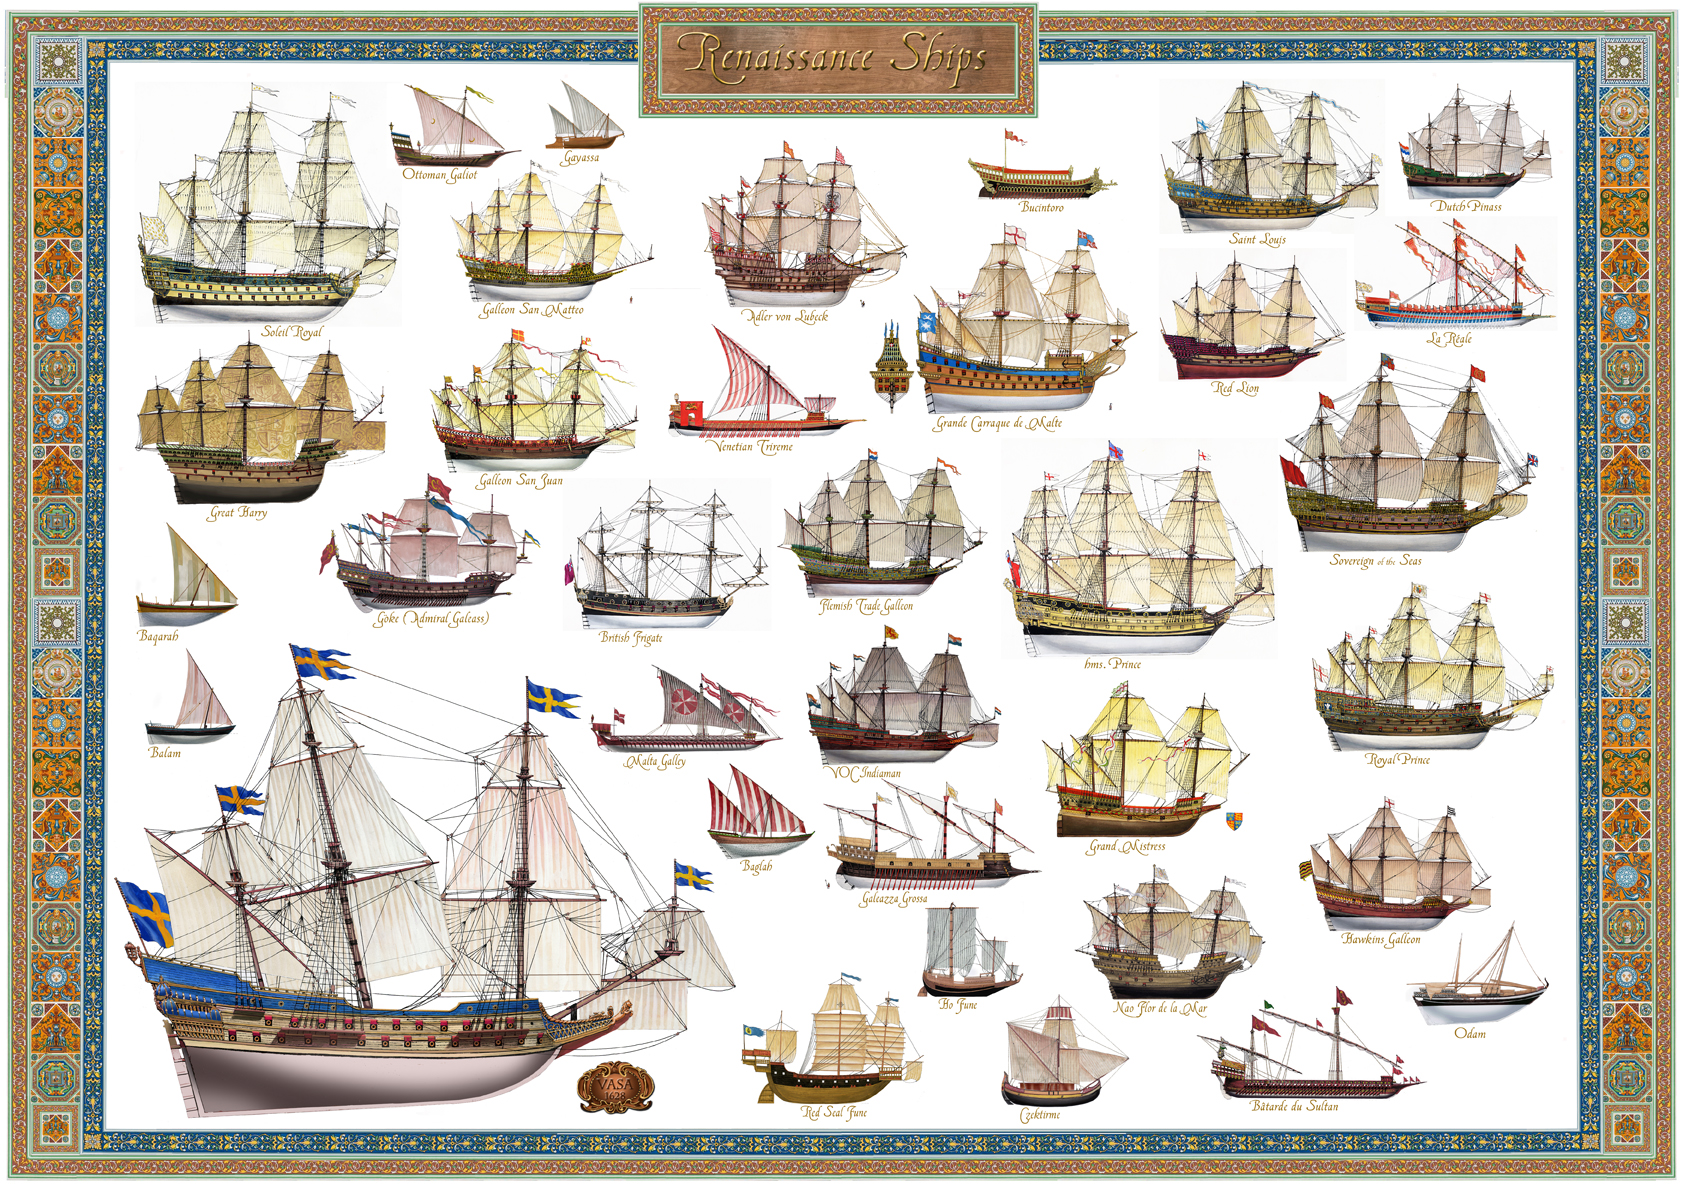 Renaissance Ships The Age Of Exploration And First Fleets